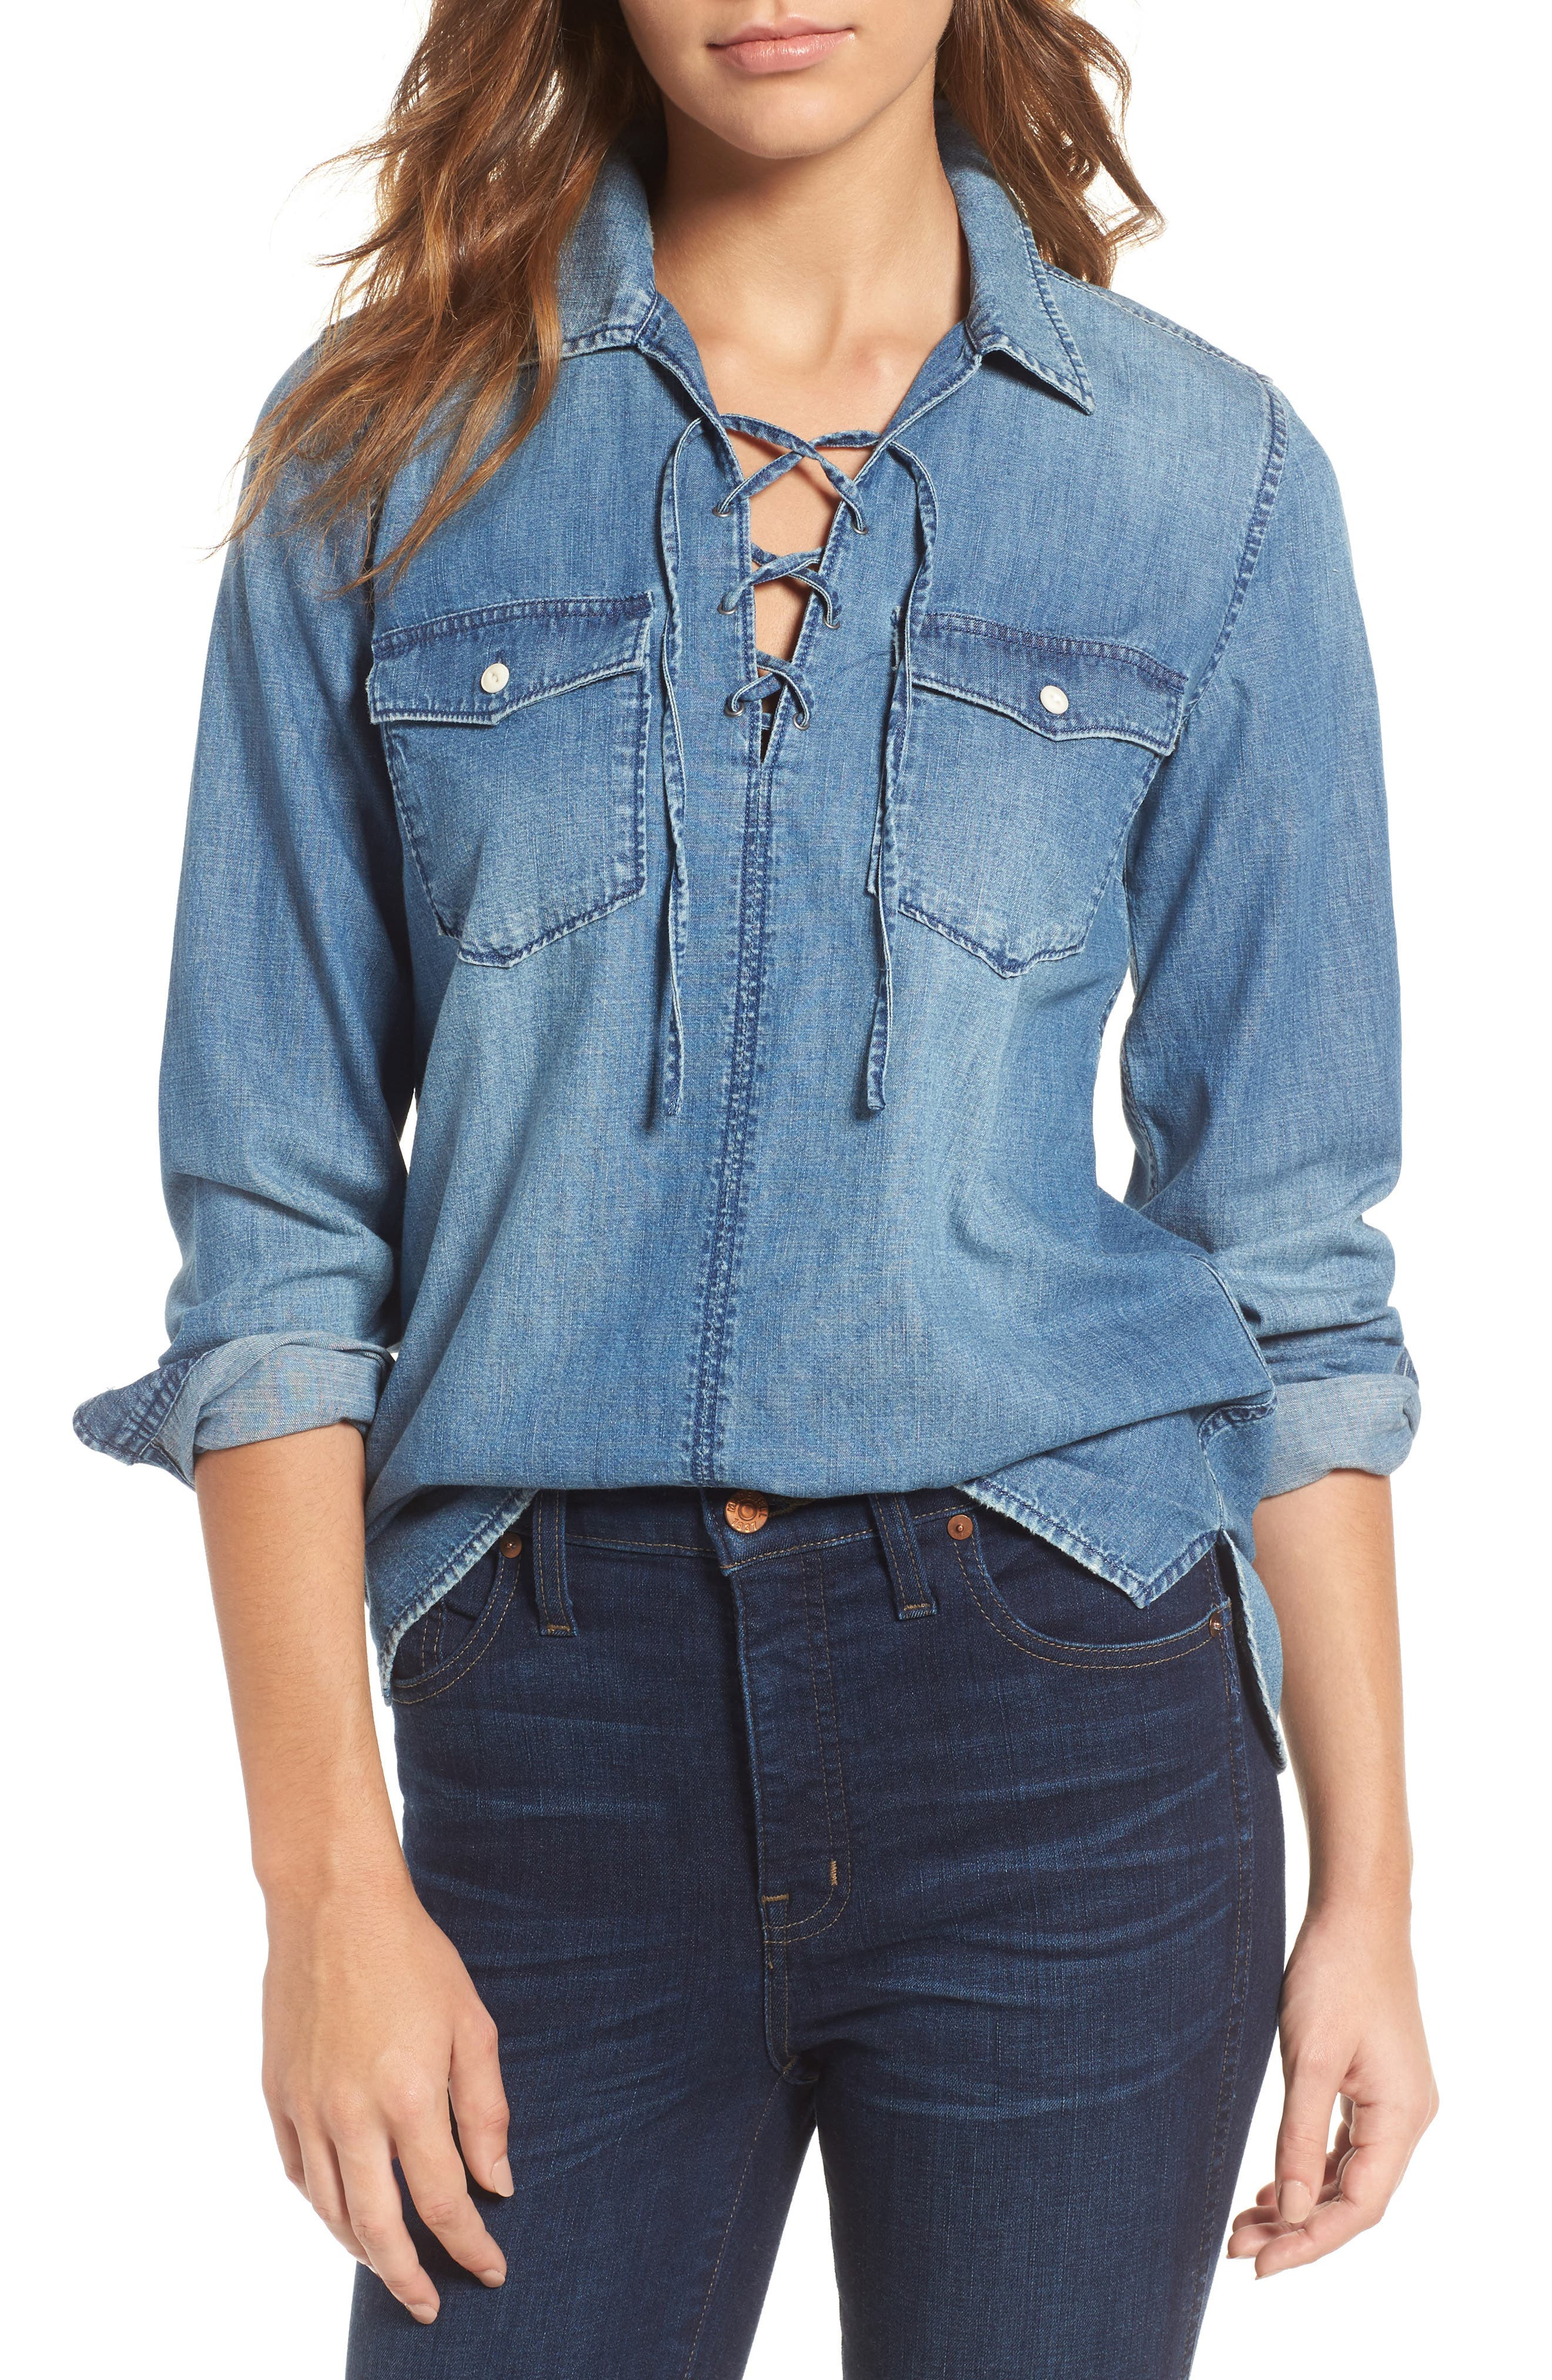 Alternate Image 1 Selected - Madewell Lace-Up Denim Shirt